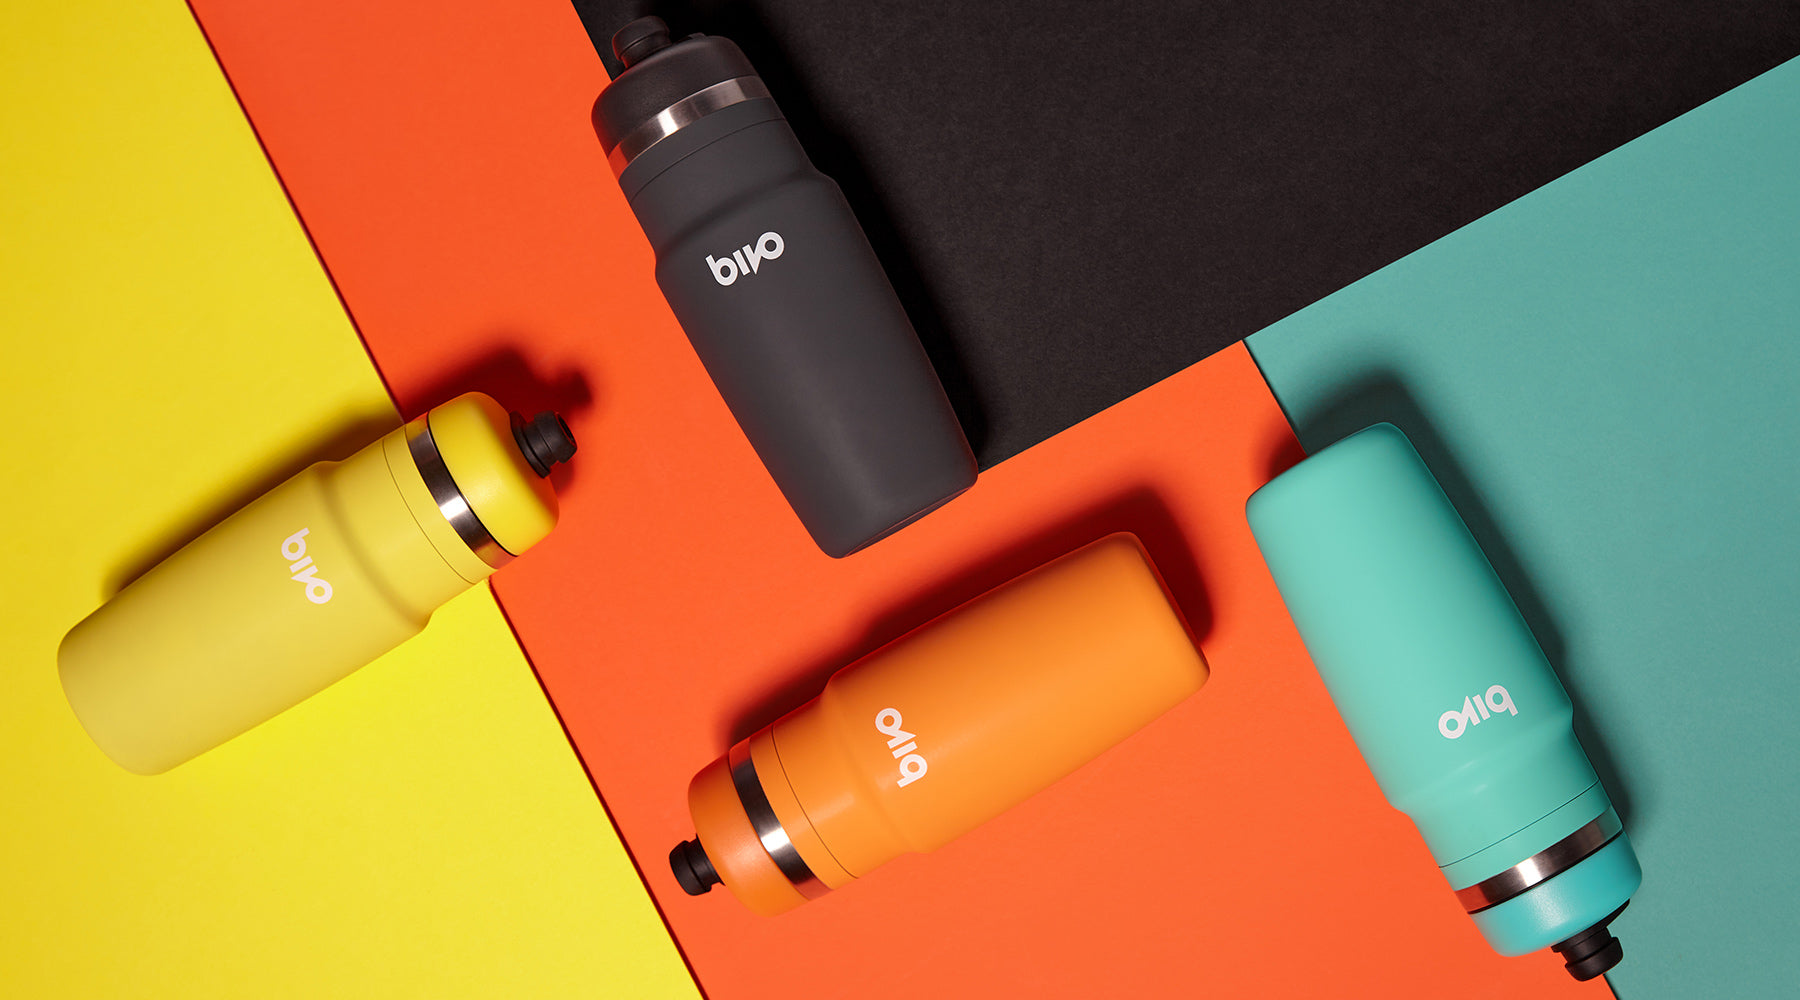 Bivo One Colors